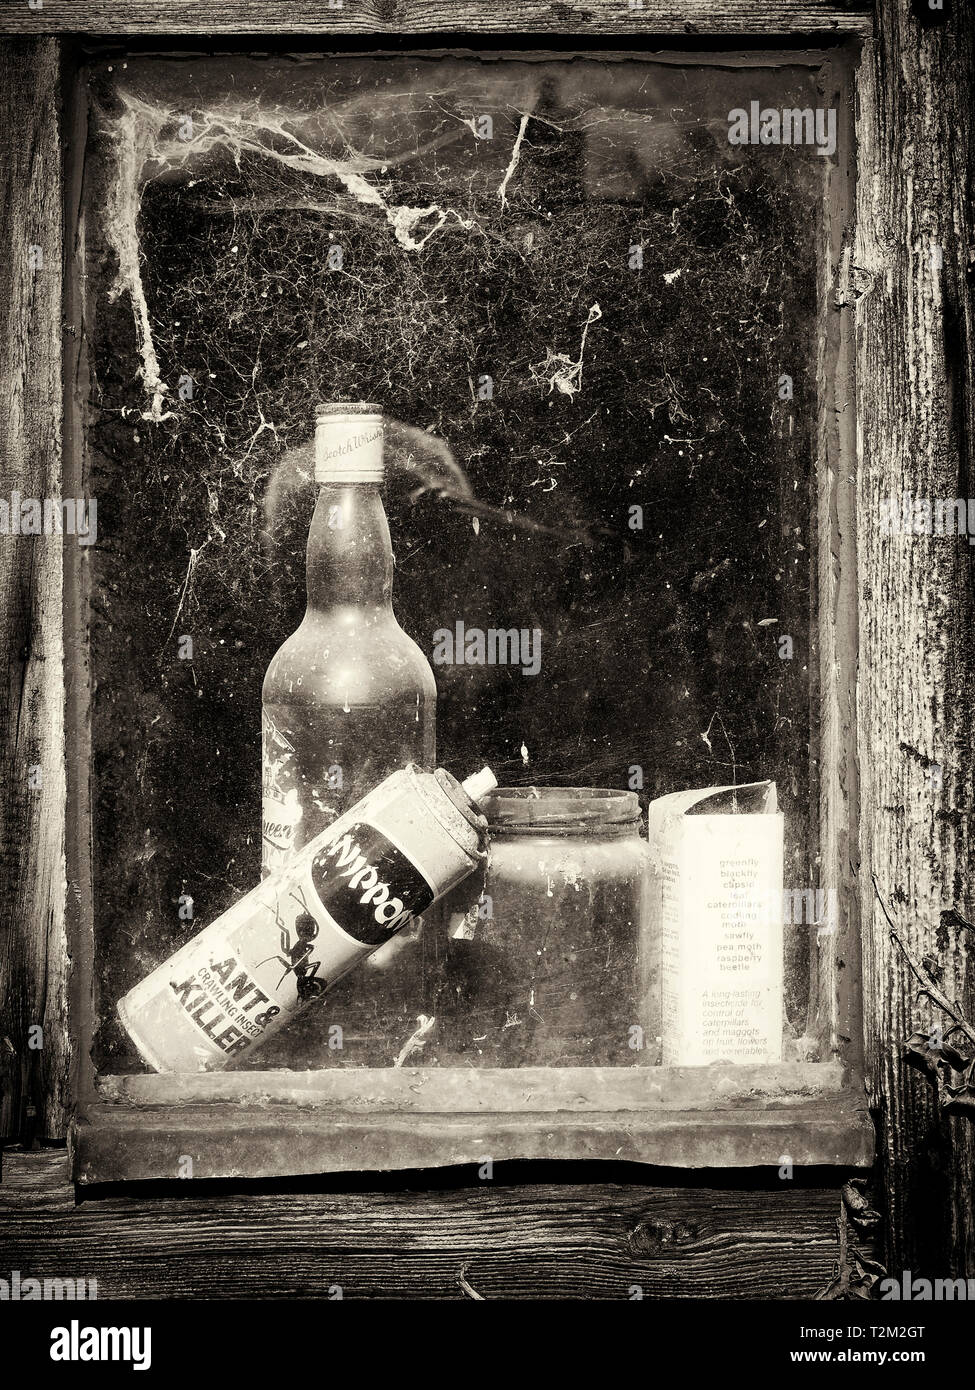 A glimpse through the window of an old garden shed with abandoned bottles and cans seen through cobweb covered glass. Stock Photo